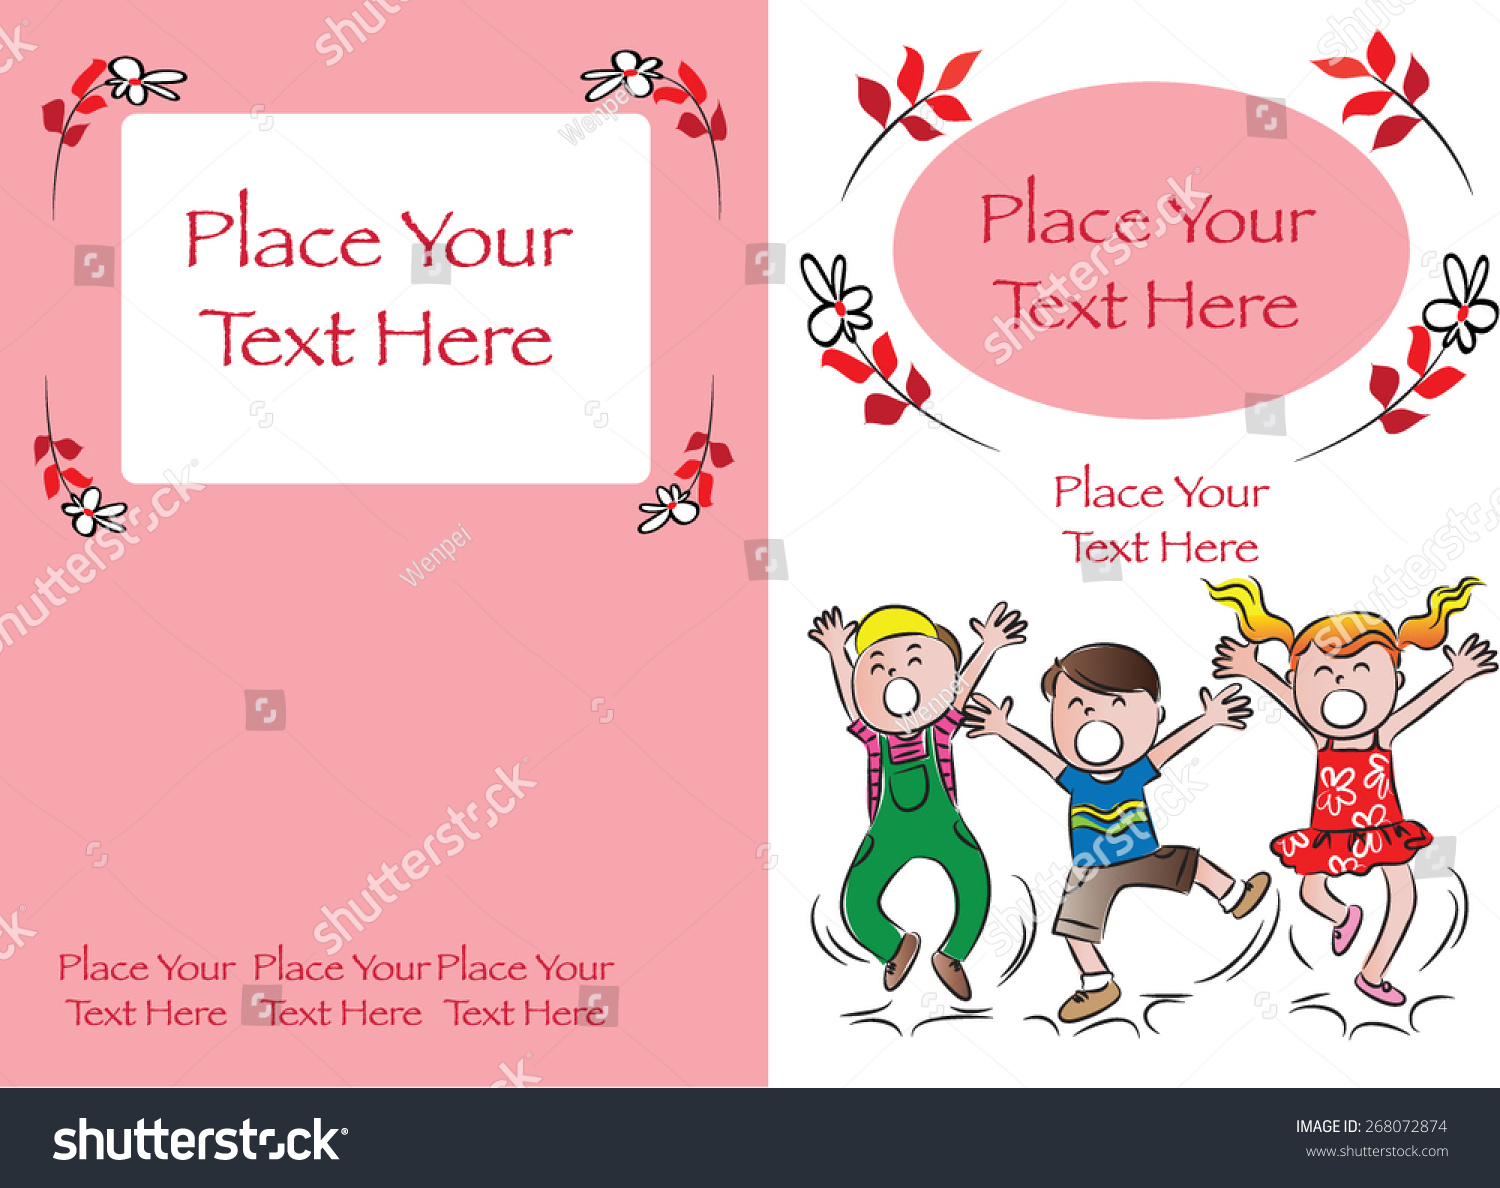 Book Cover Design Background For Kids ~ Kids book cover design red background stock vector